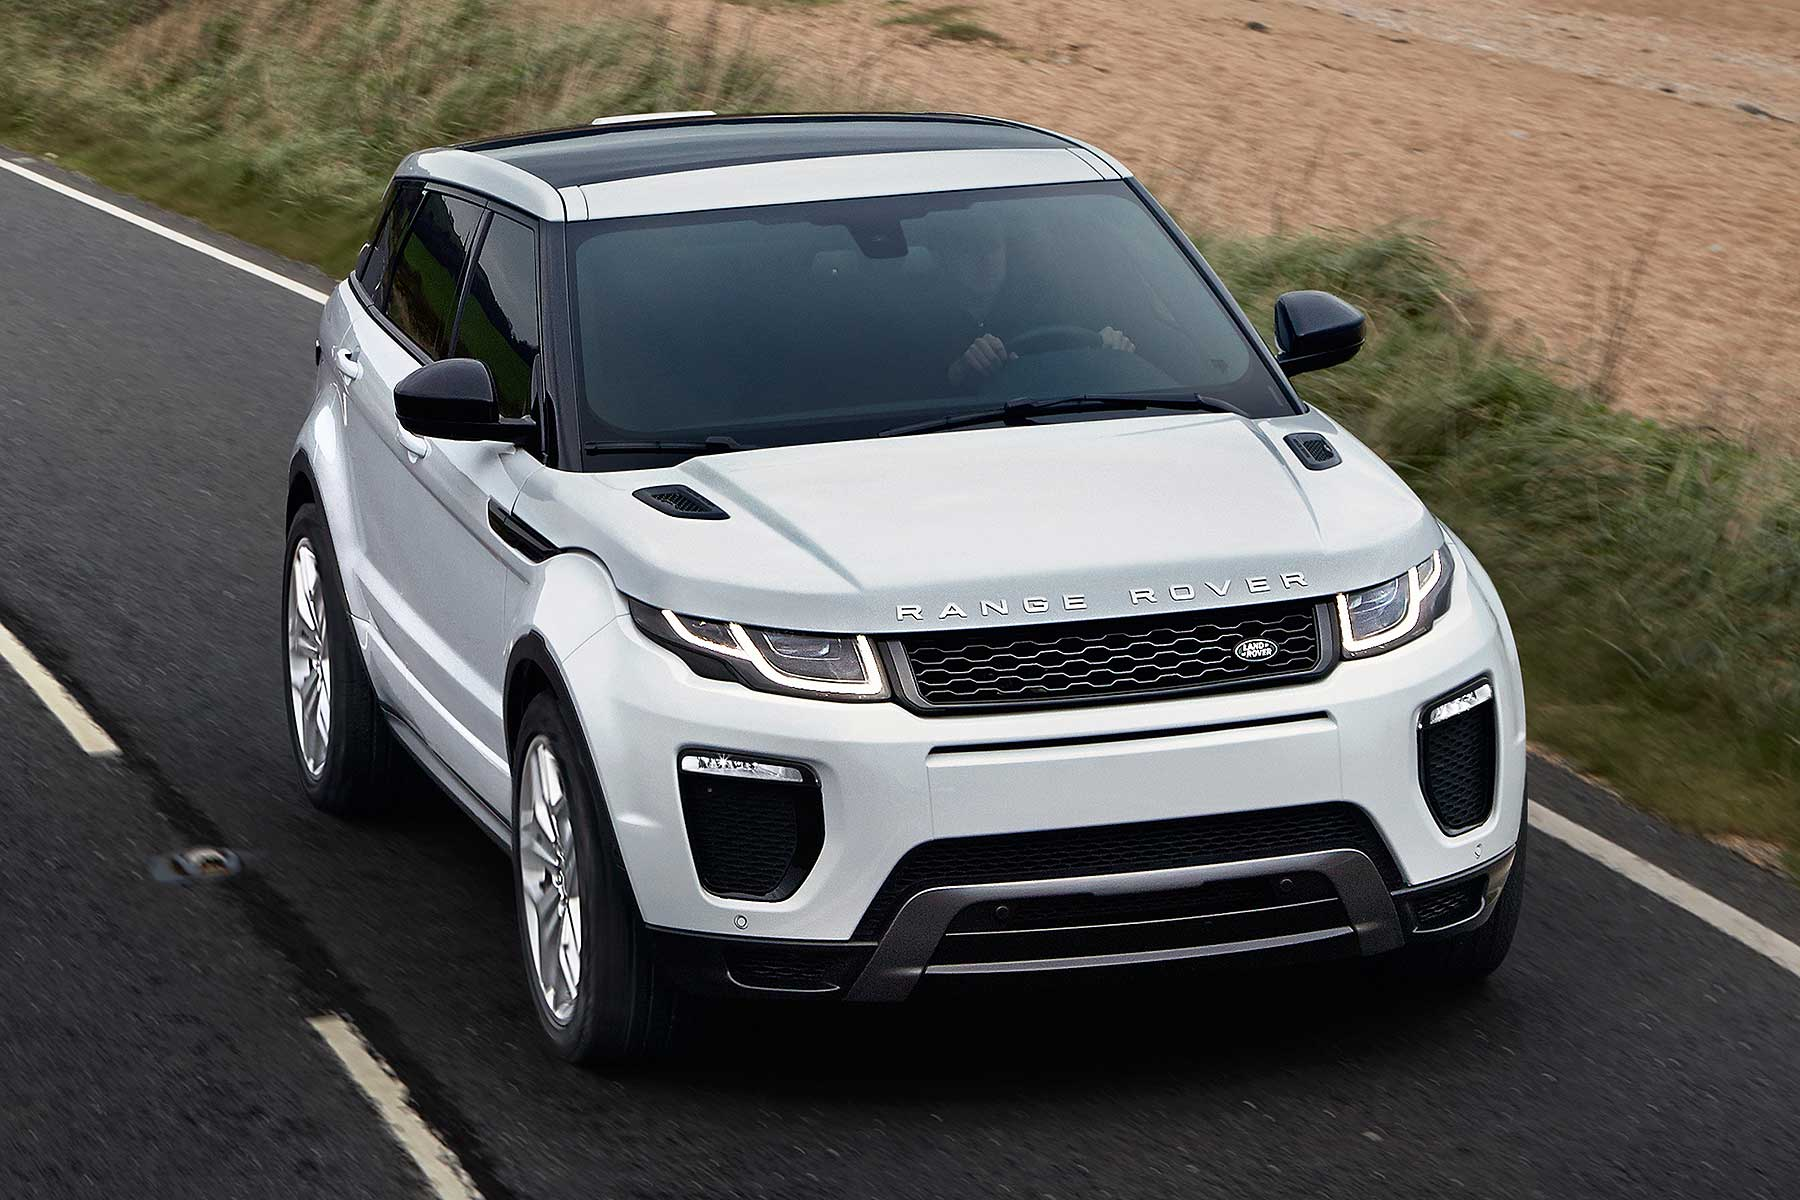 2016 range rover evoque prices to start at 30 200 motoring research. Black Bedroom Furniture Sets. Home Design Ideas